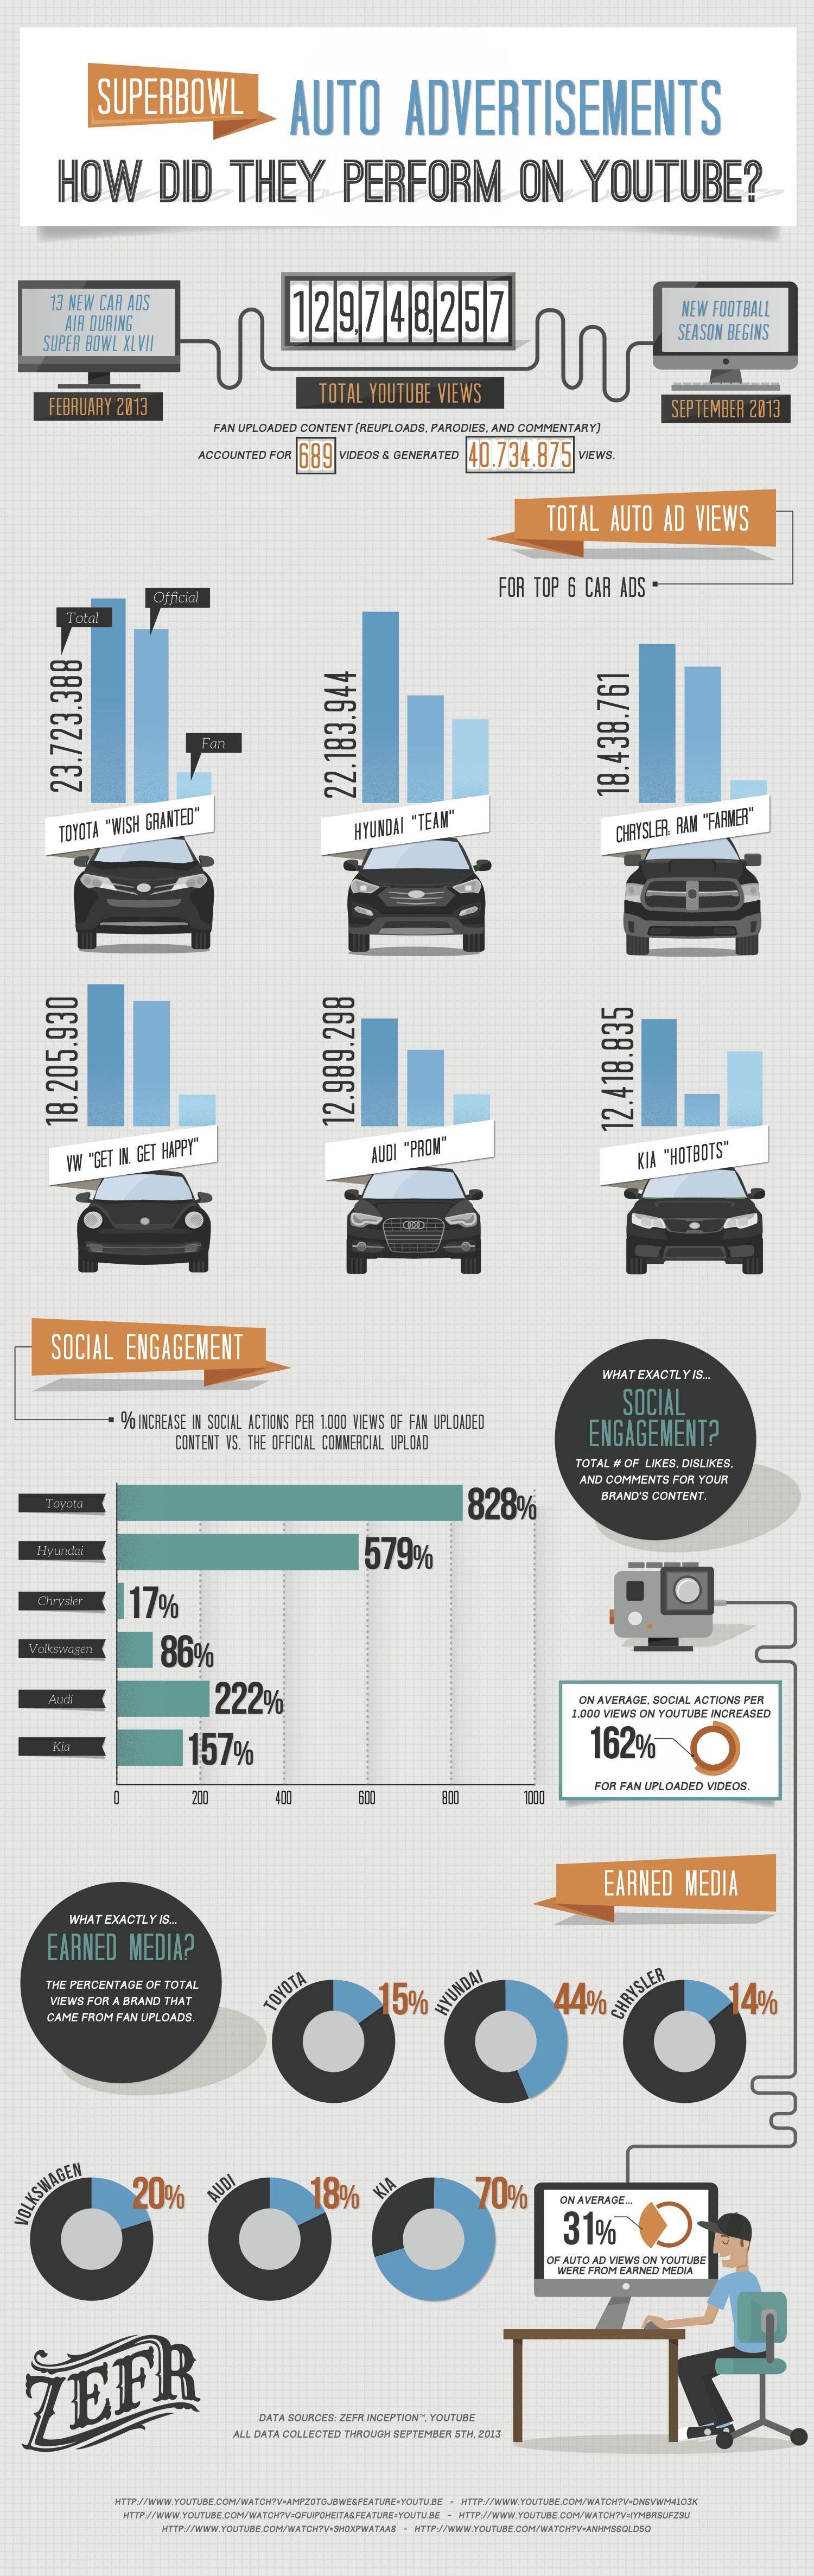 Superbowl Advertisements: How did they really perform? Infographic